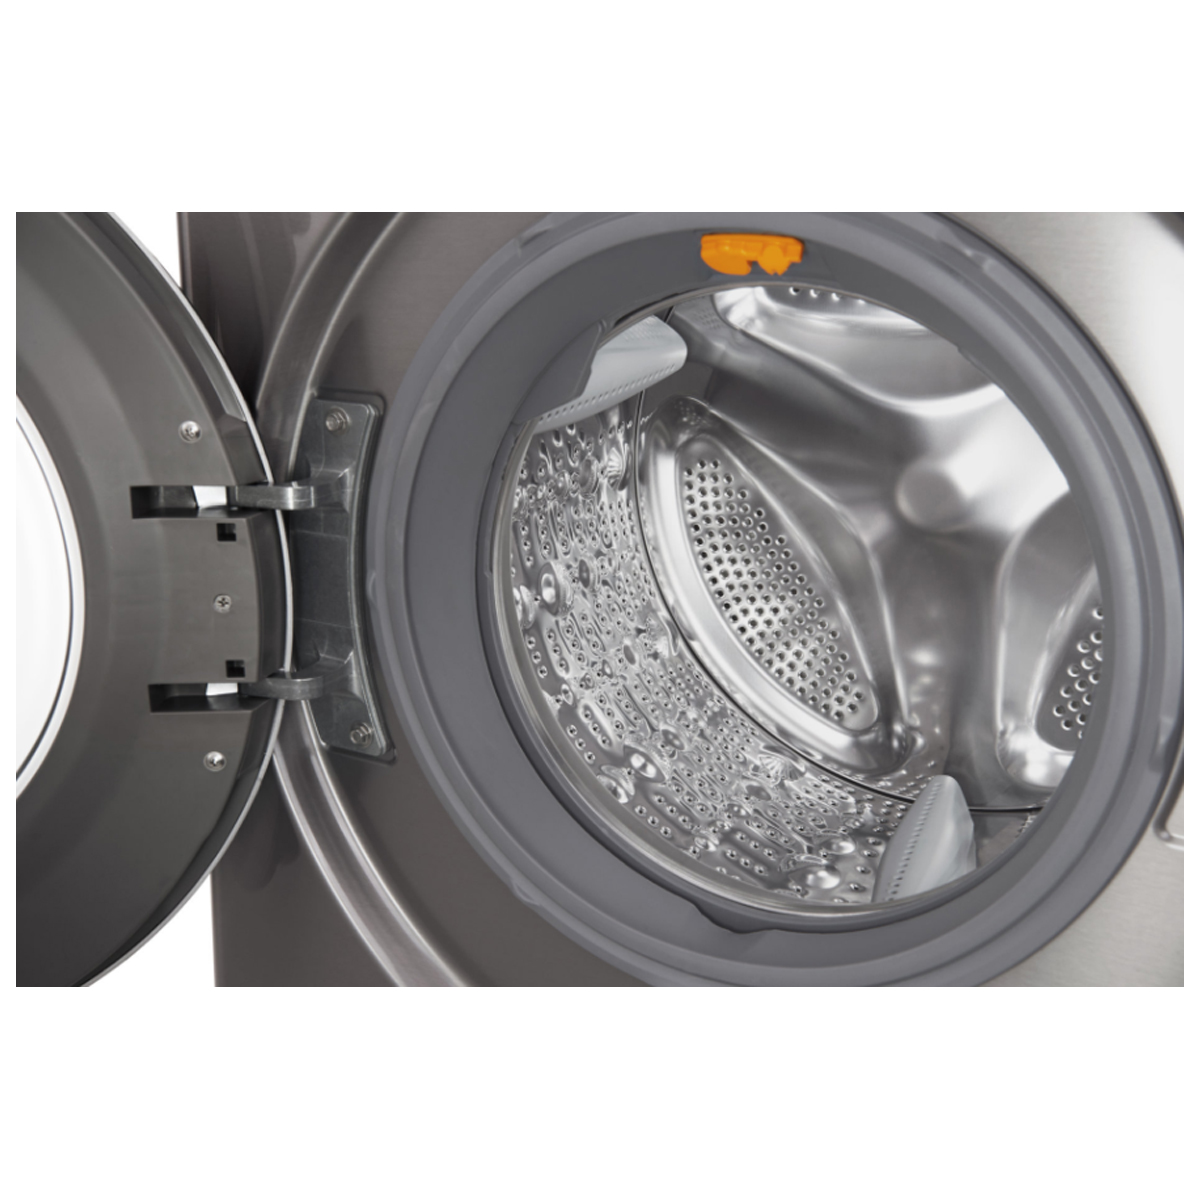 LG WD1409NCE Smart ThinQ™ 9kg Front Load Washing Machine 132324